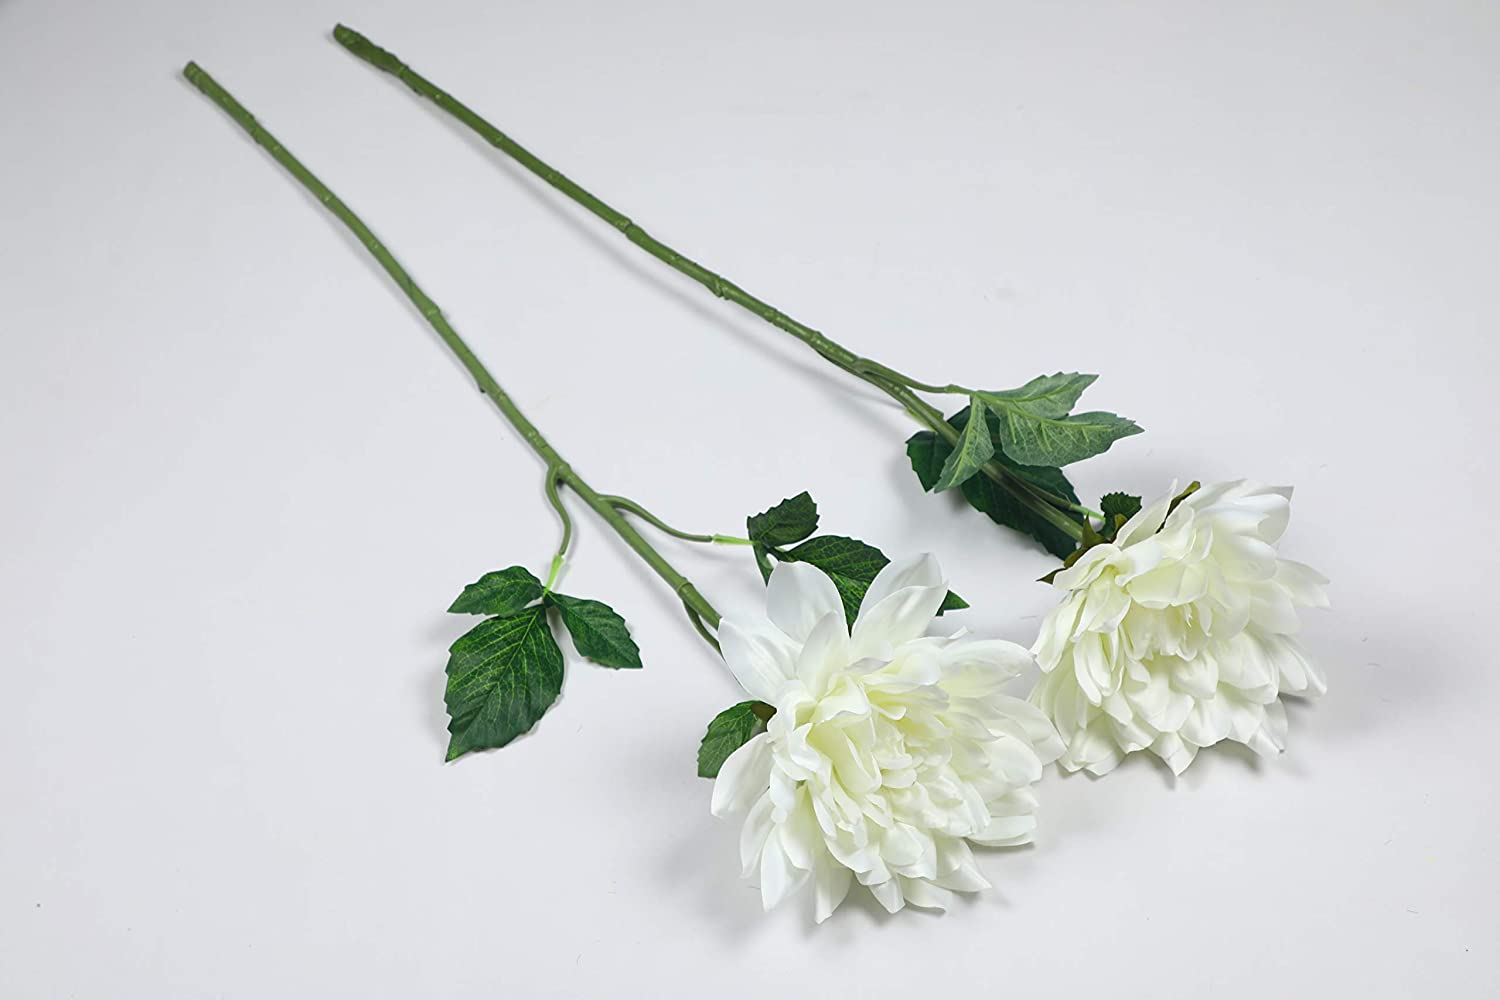 PolliNation Beautiful White Dahlia Artificial Flower (Pack of 2, 34 INCH) - Artificial Flowers & Plants - PolliNation